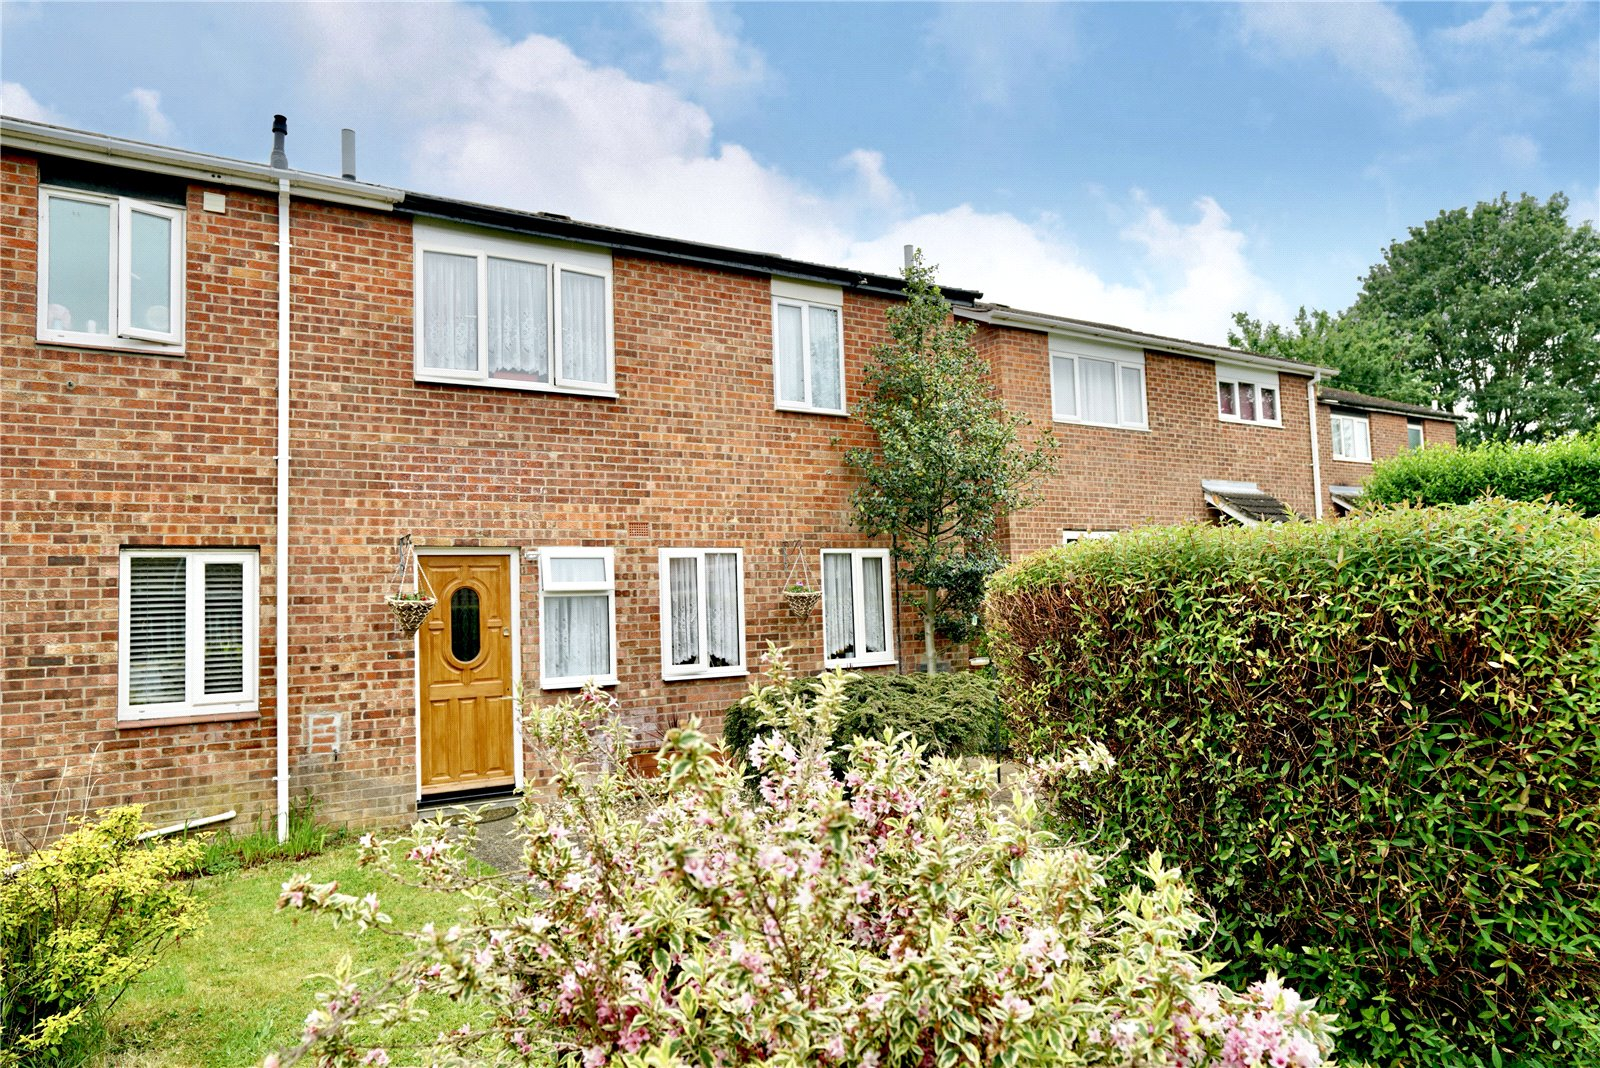 3 bed house for sale in Countess Close, Eaton Socon  - Property Image 2